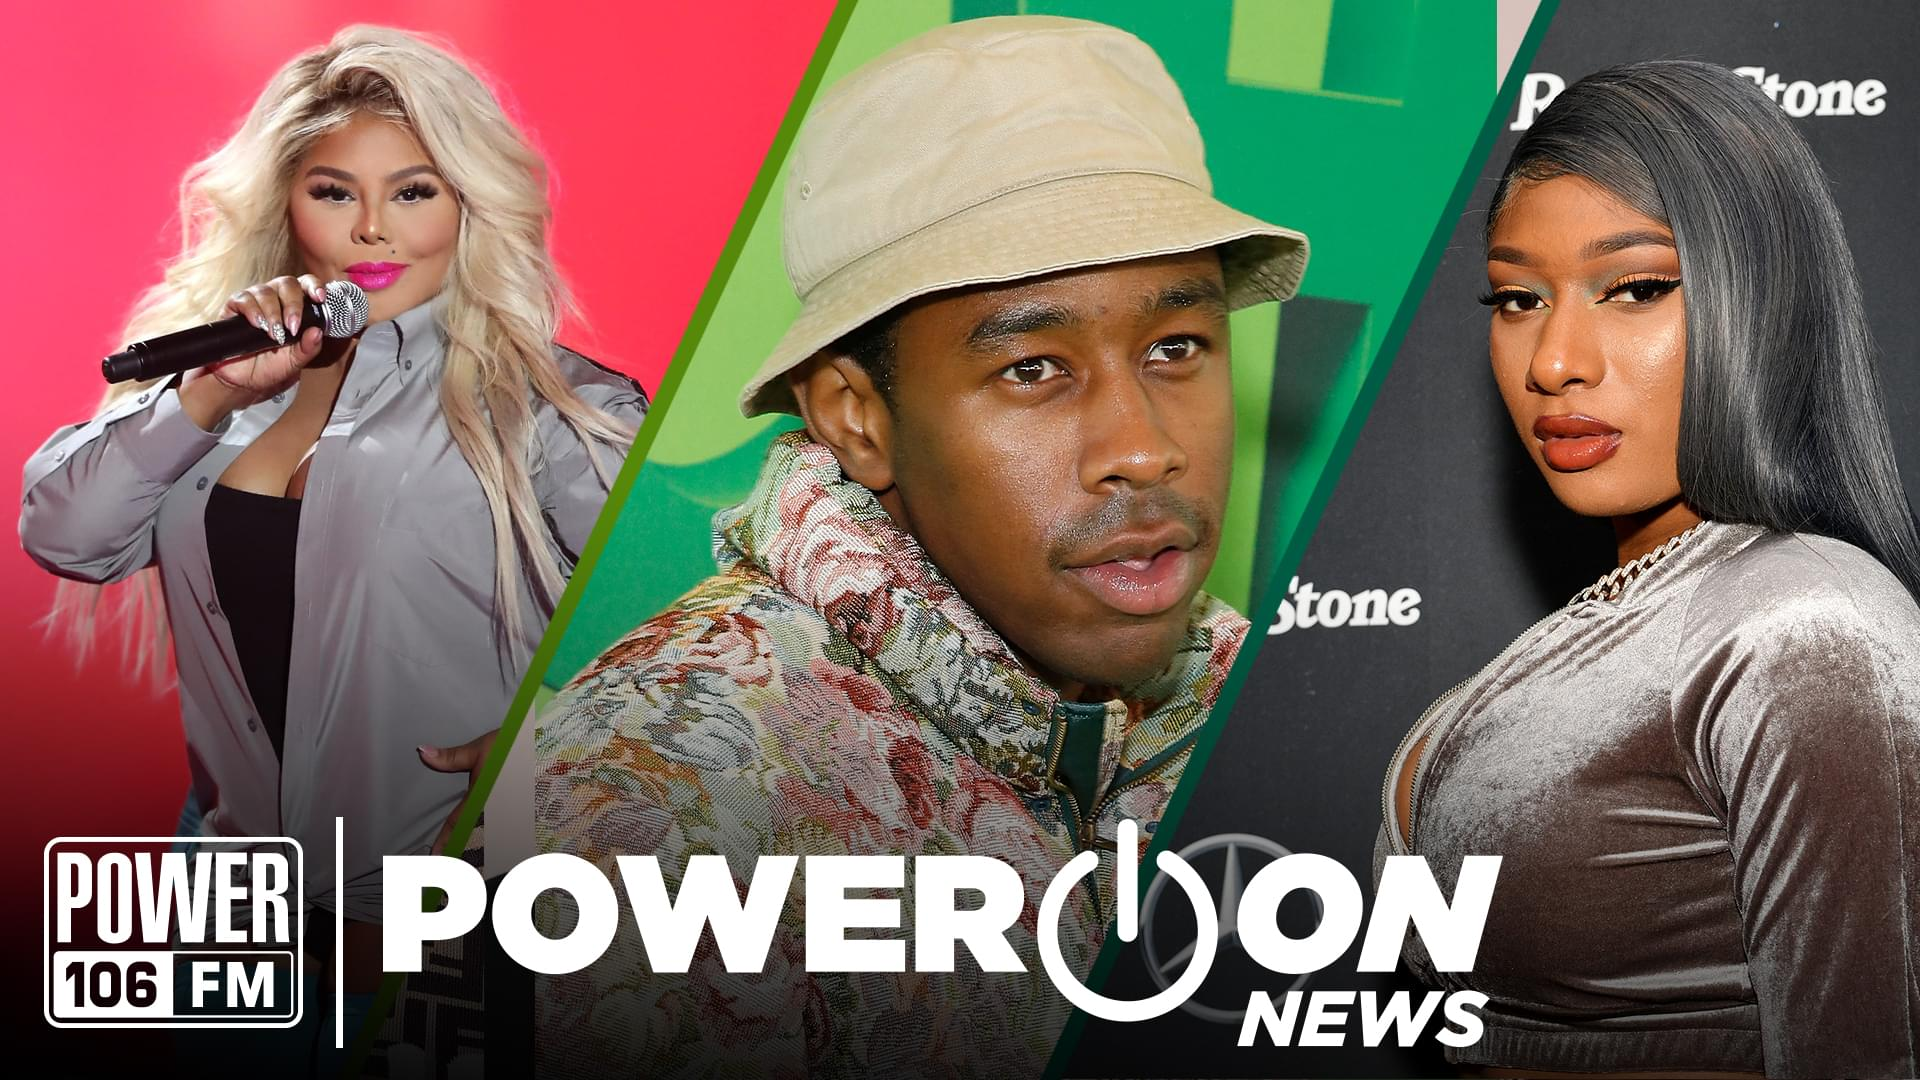 #PowerOn: Tyler The Creator Drops 'IGOR' + Migos Sued Over BIG Clothing Theft